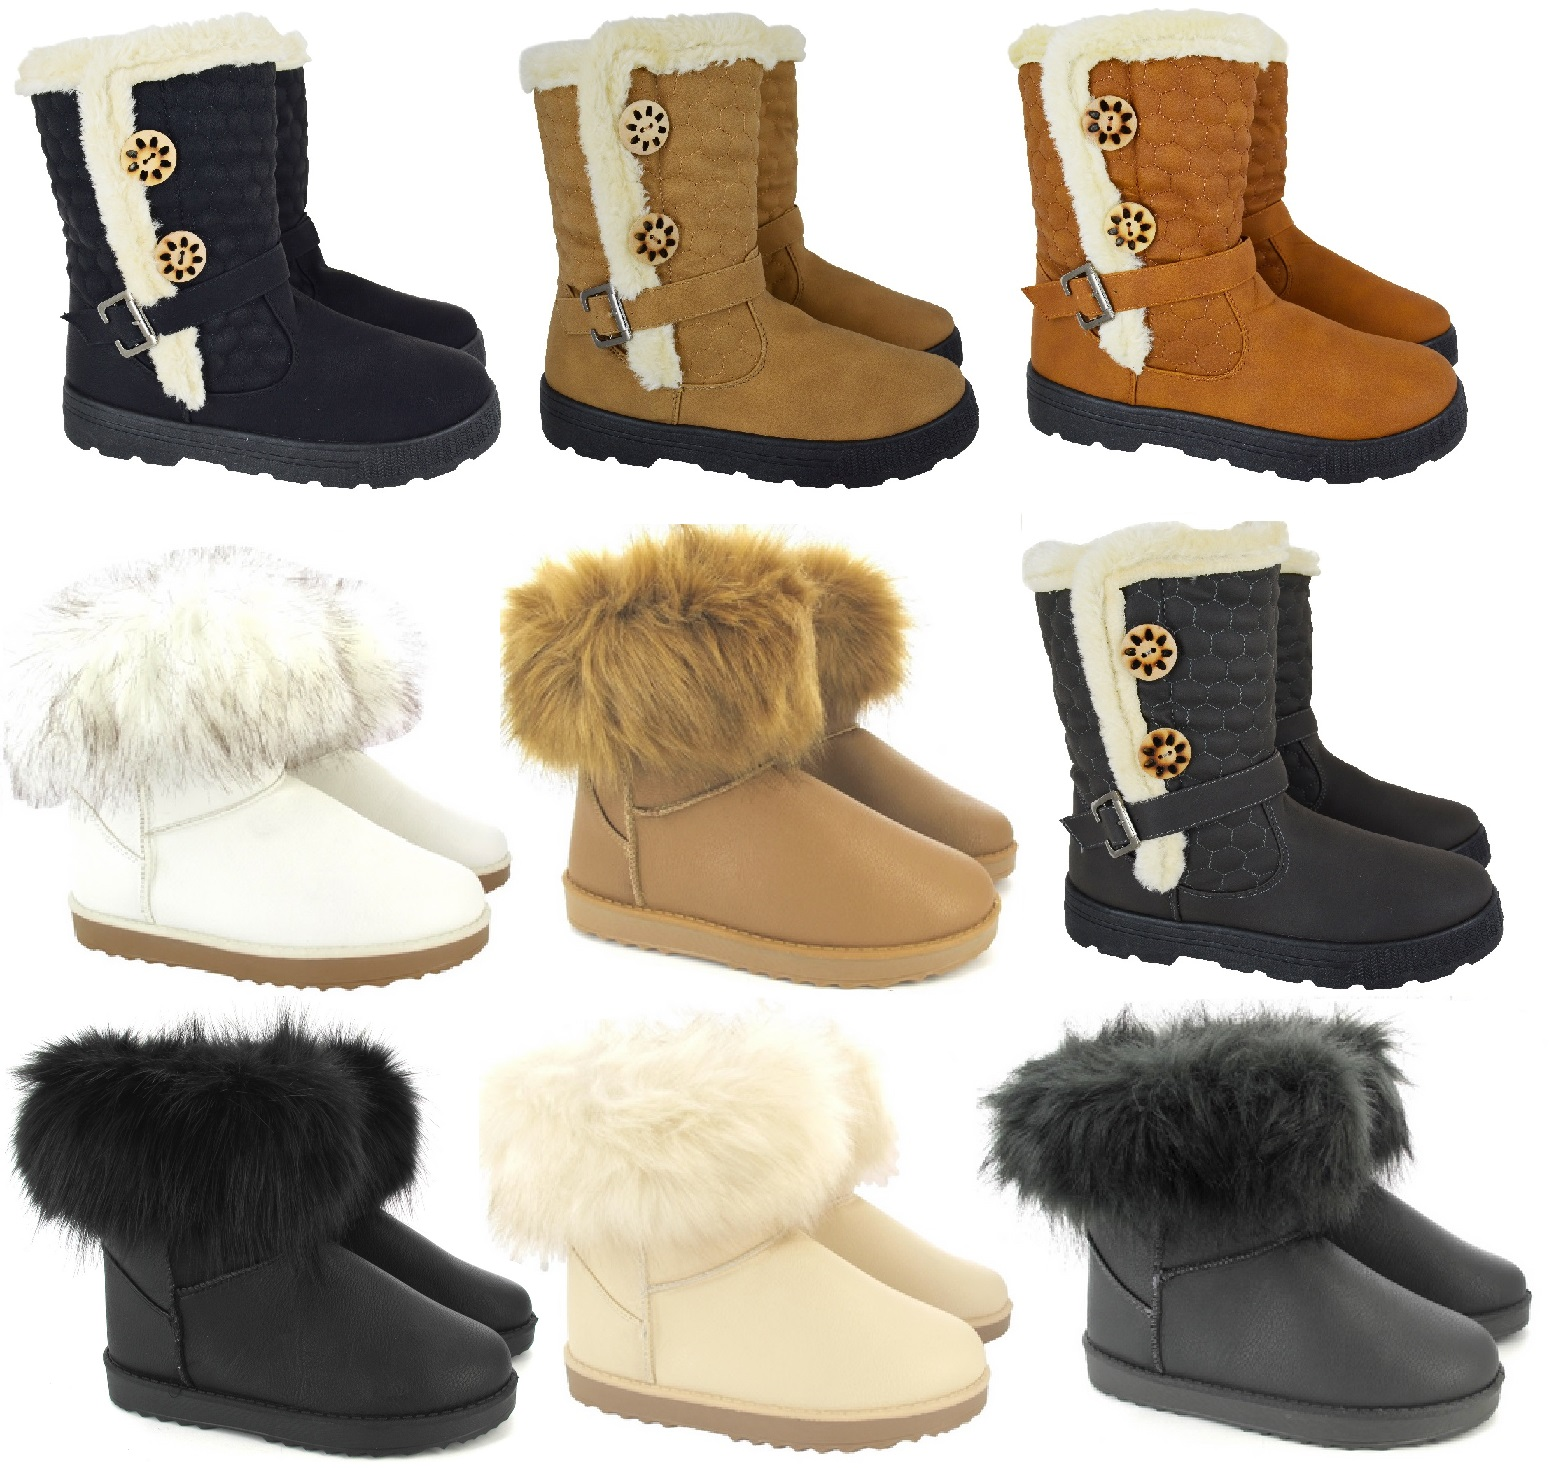 You searched for: fur ankle boots! Etsy is the home to thousands of handmade, vintage, and one-of-a-kind products and gifts related to your search. No matter what you're looking for or where you are in the world, our global marketplace of sellers can help you find unique and affordable options. Let's get started!